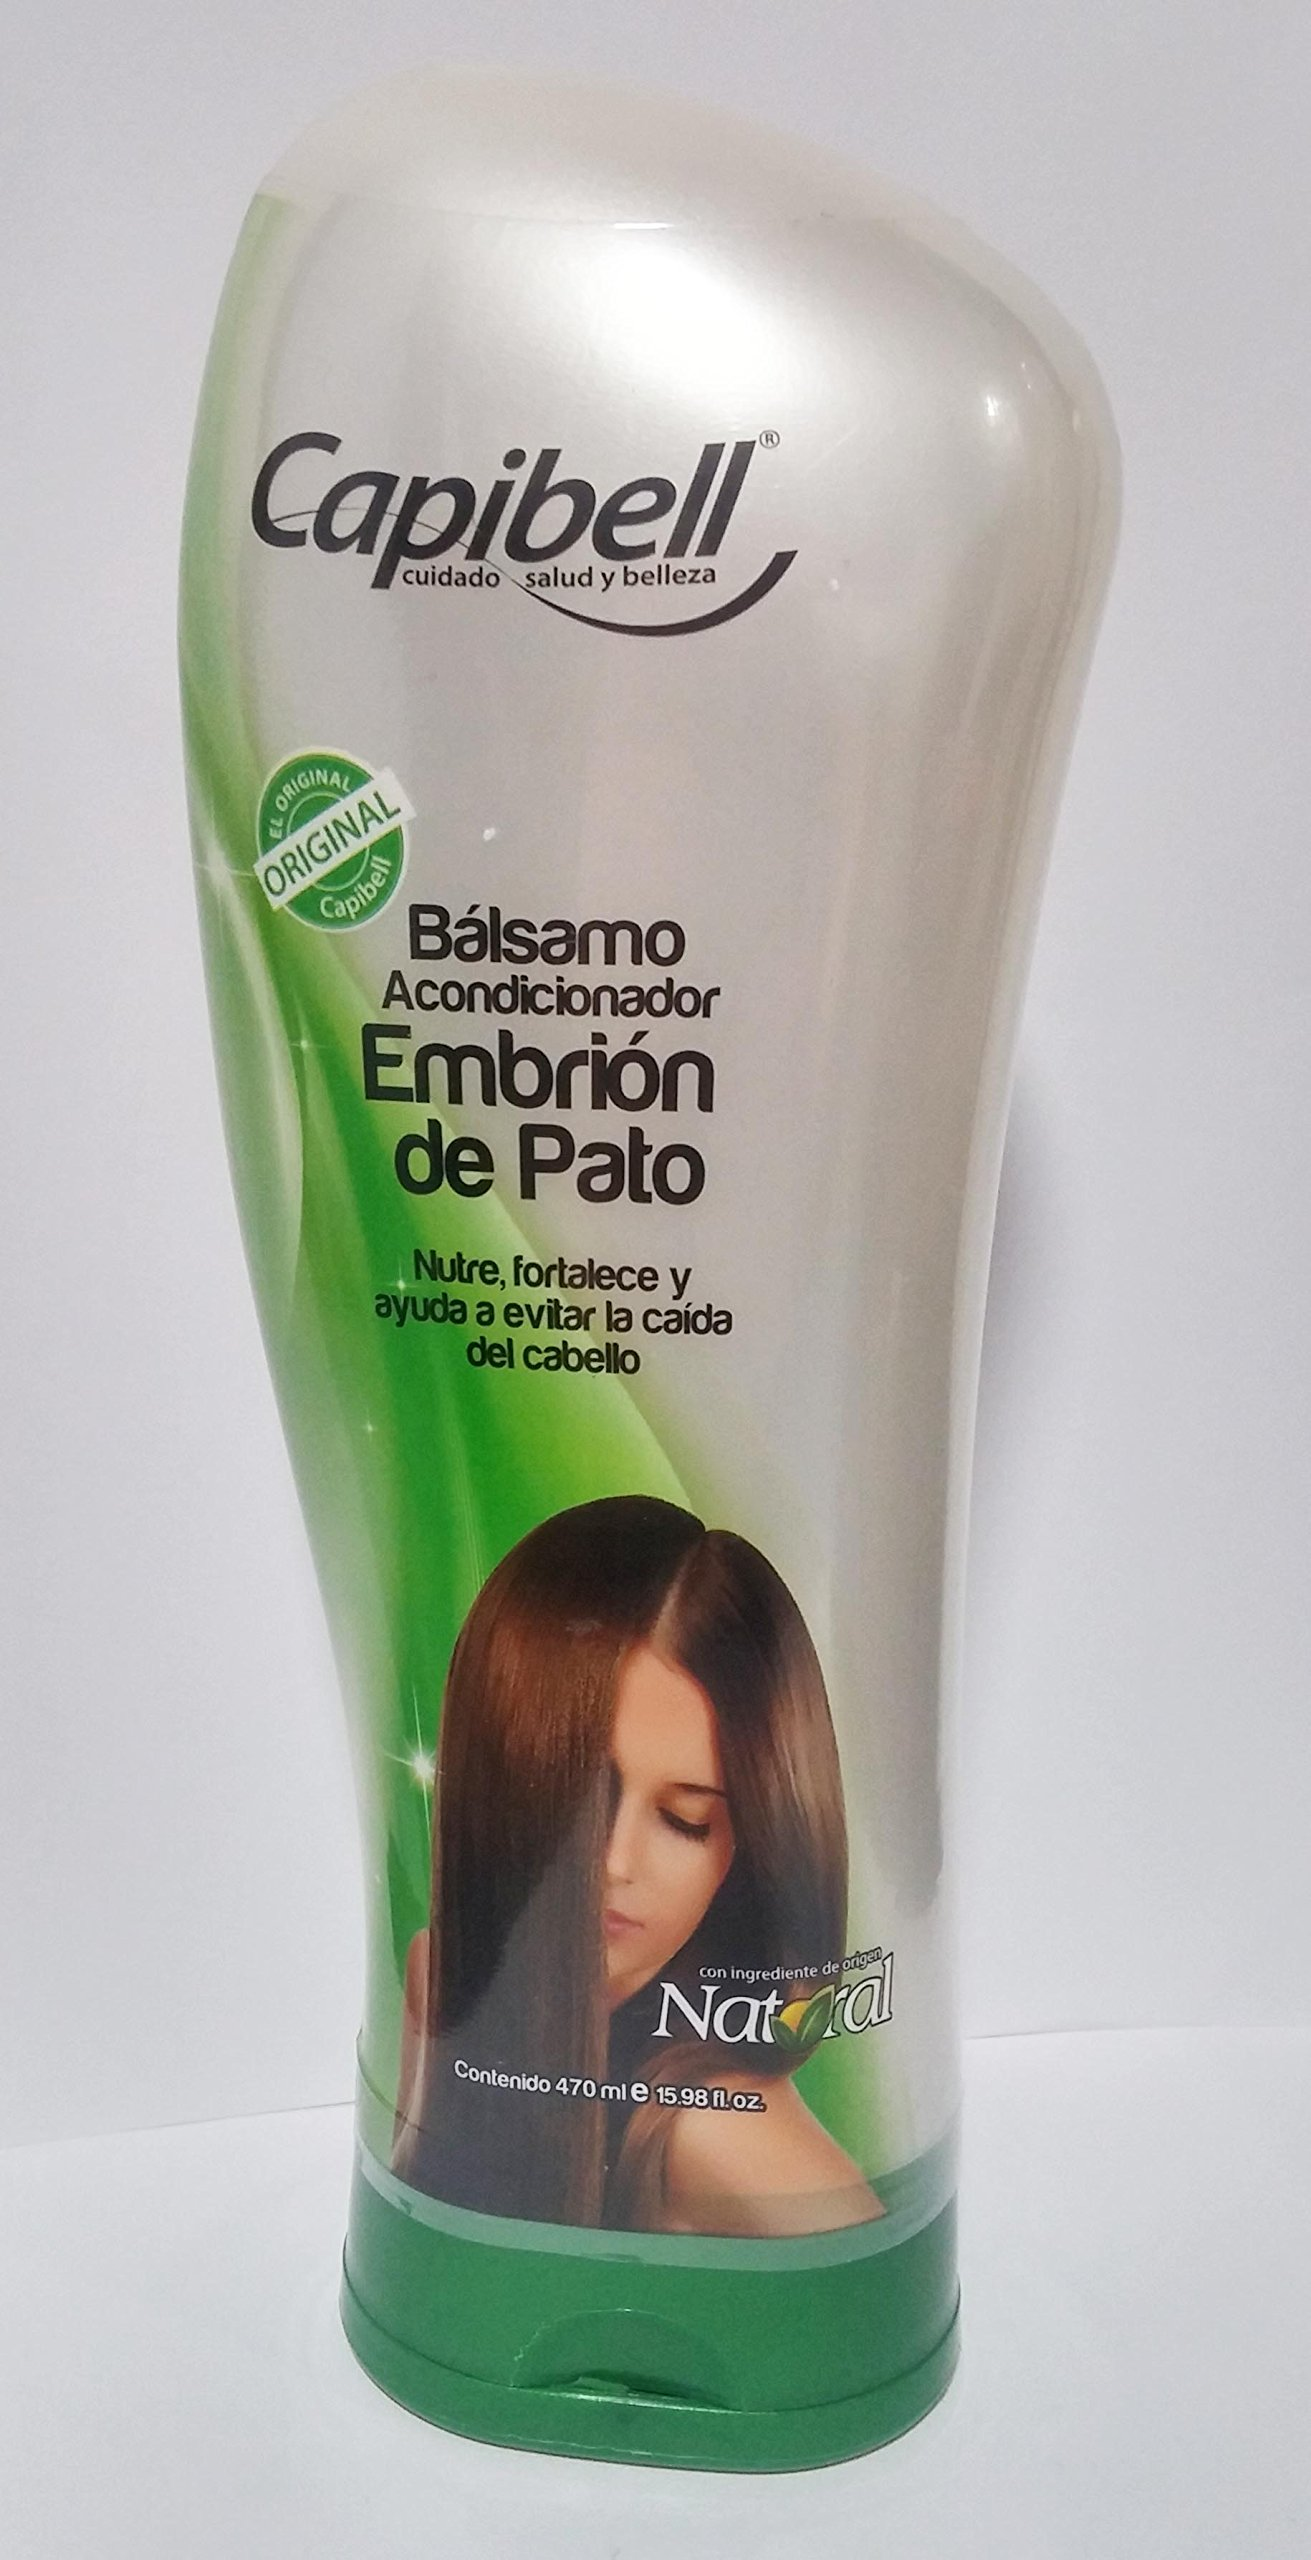 Capibell Balsamo Acondicionador Embrion de Pato 470ml 15.98 fl. oz.